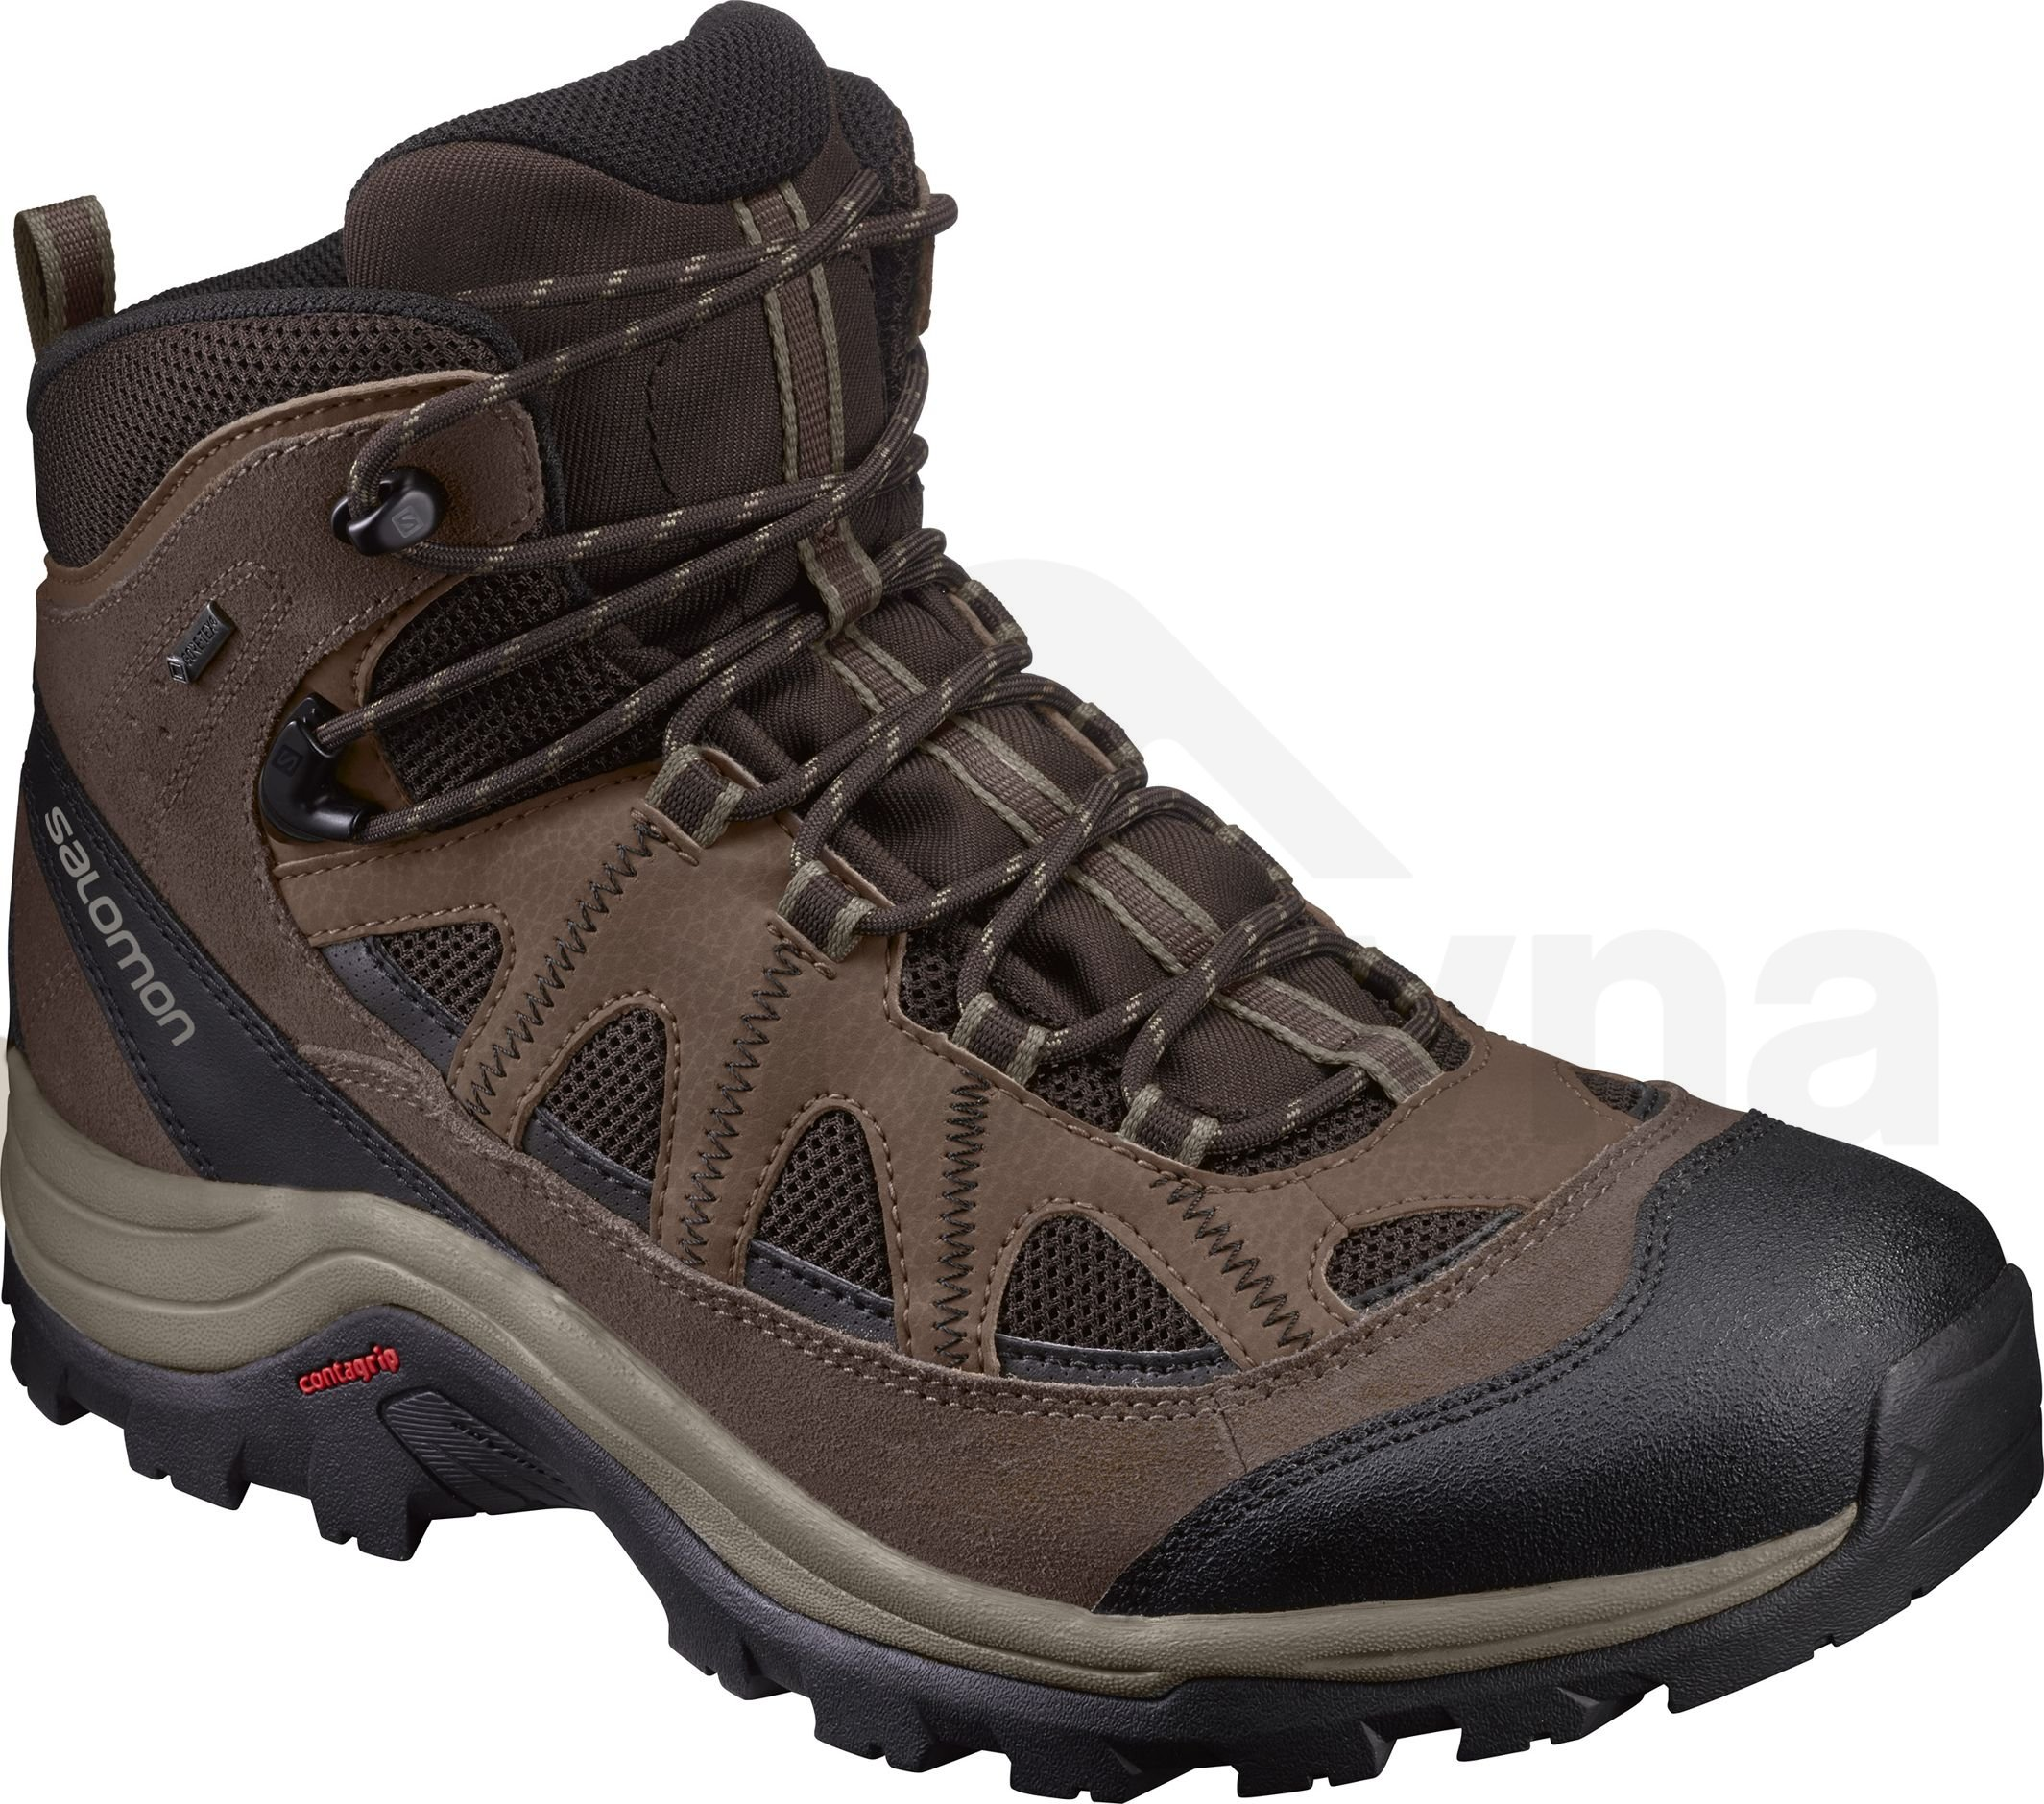 L39466800_0_M_authentic-ltr-gtx_black-coffee.jpg.originale